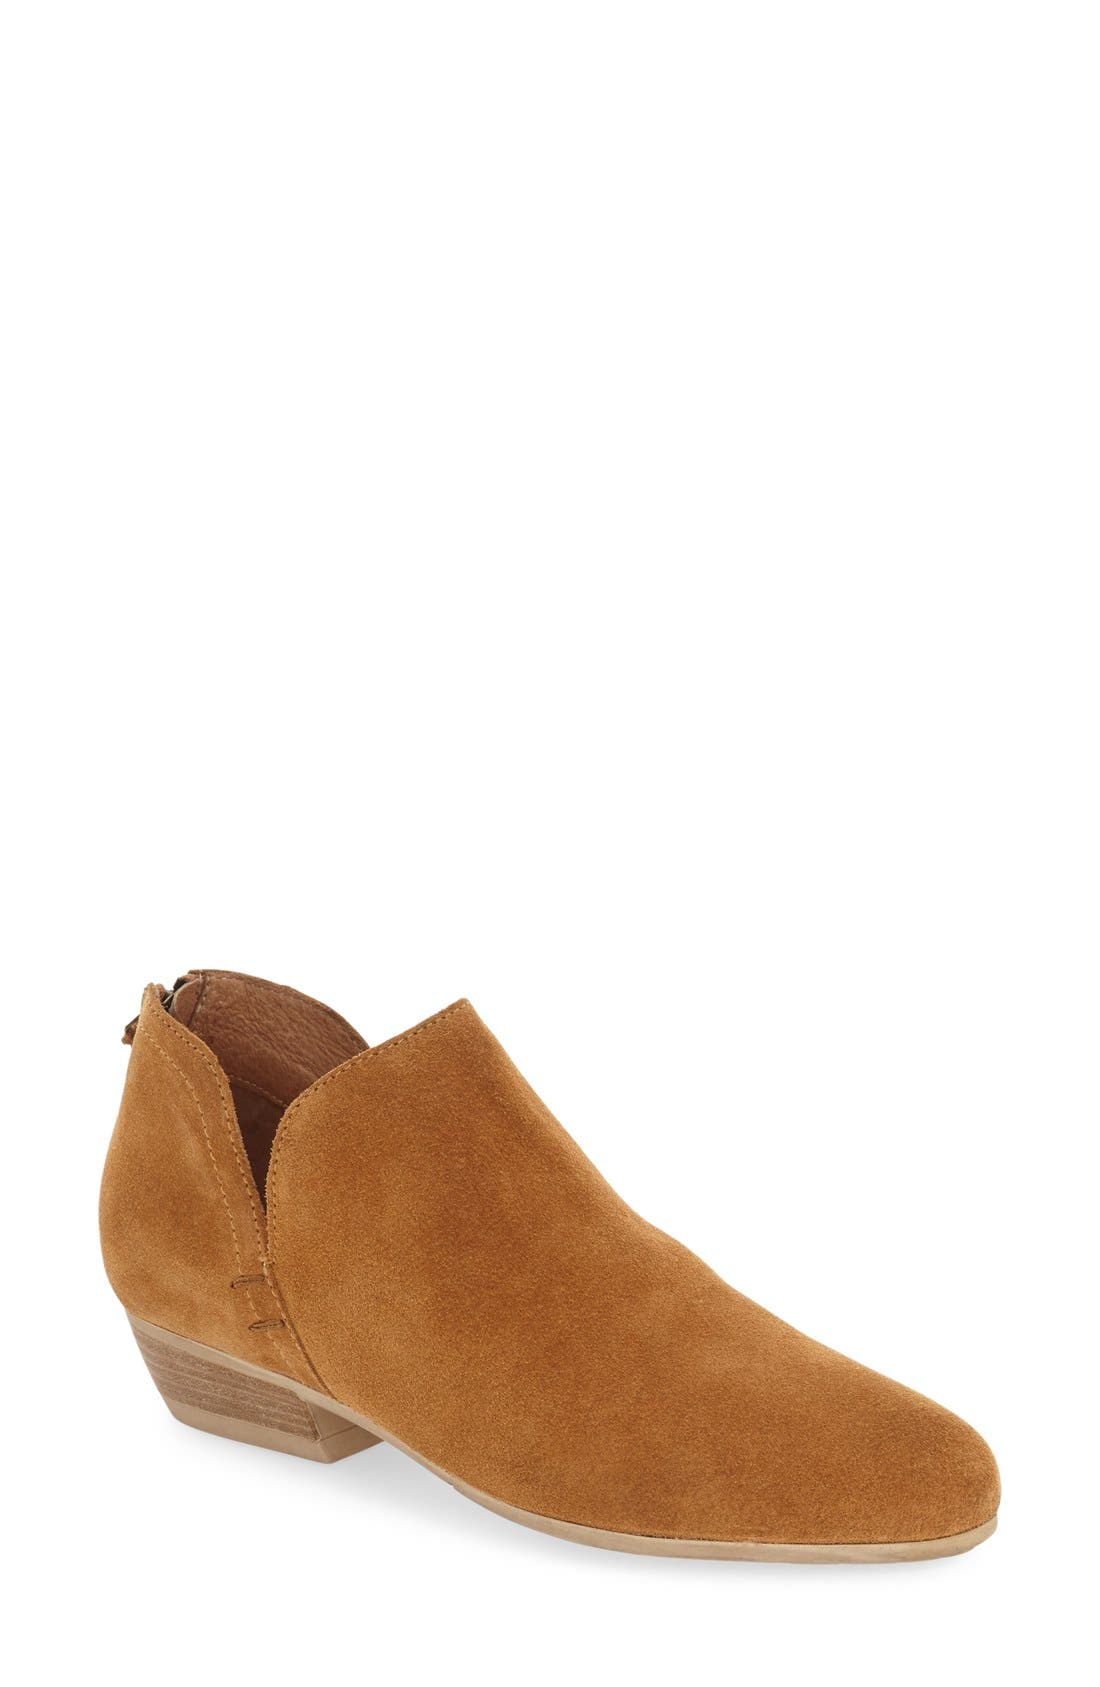 Kenneth Cole New York 'Cooper' Suede Bootie (Women)